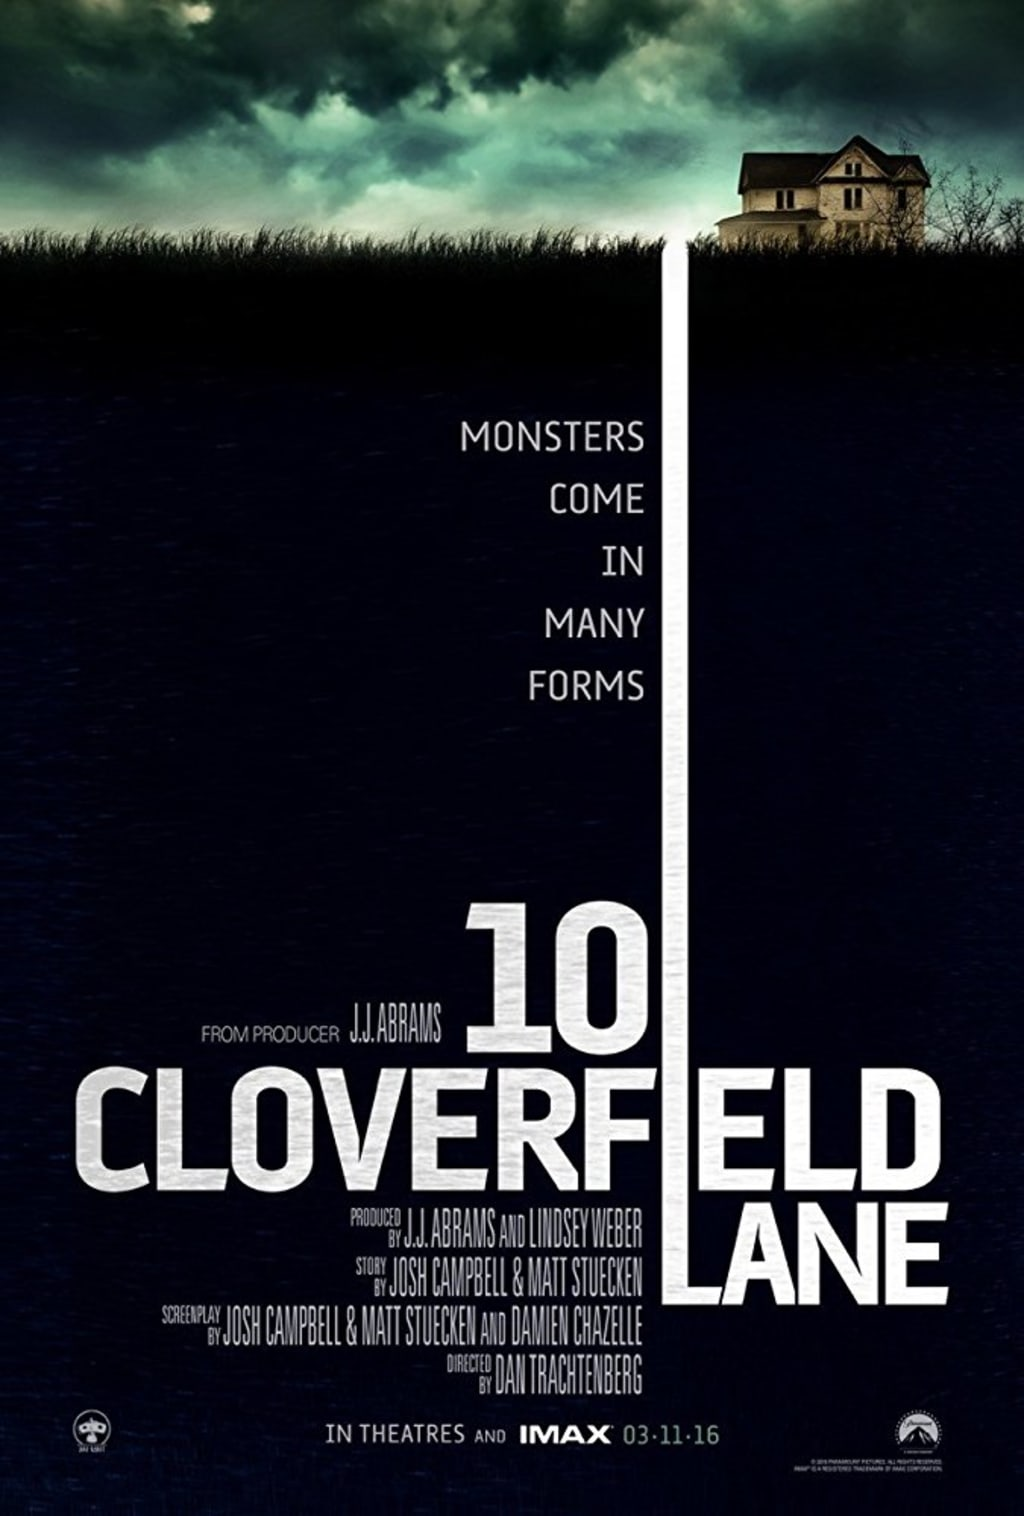 Reed Alexander's Horror Review of '10 Cloverfield Lane' (2016)